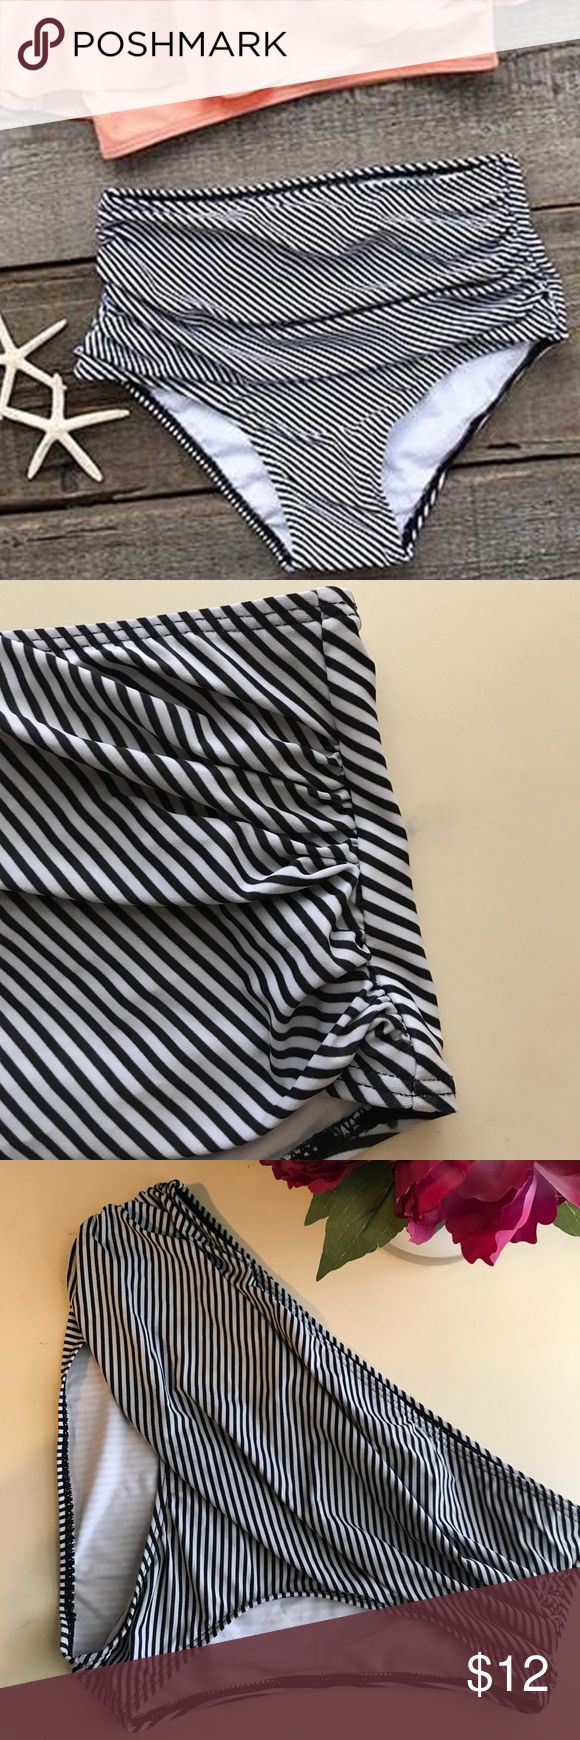 NWOT Cupshe B&W High Waisted Swimsuit Bottoms NWOT Cupshe Black and White High Waisted Swimsuit Bottoms. Never worn! Size extra large. Super cute and will go with any top! Cupshe Swim Bikinis